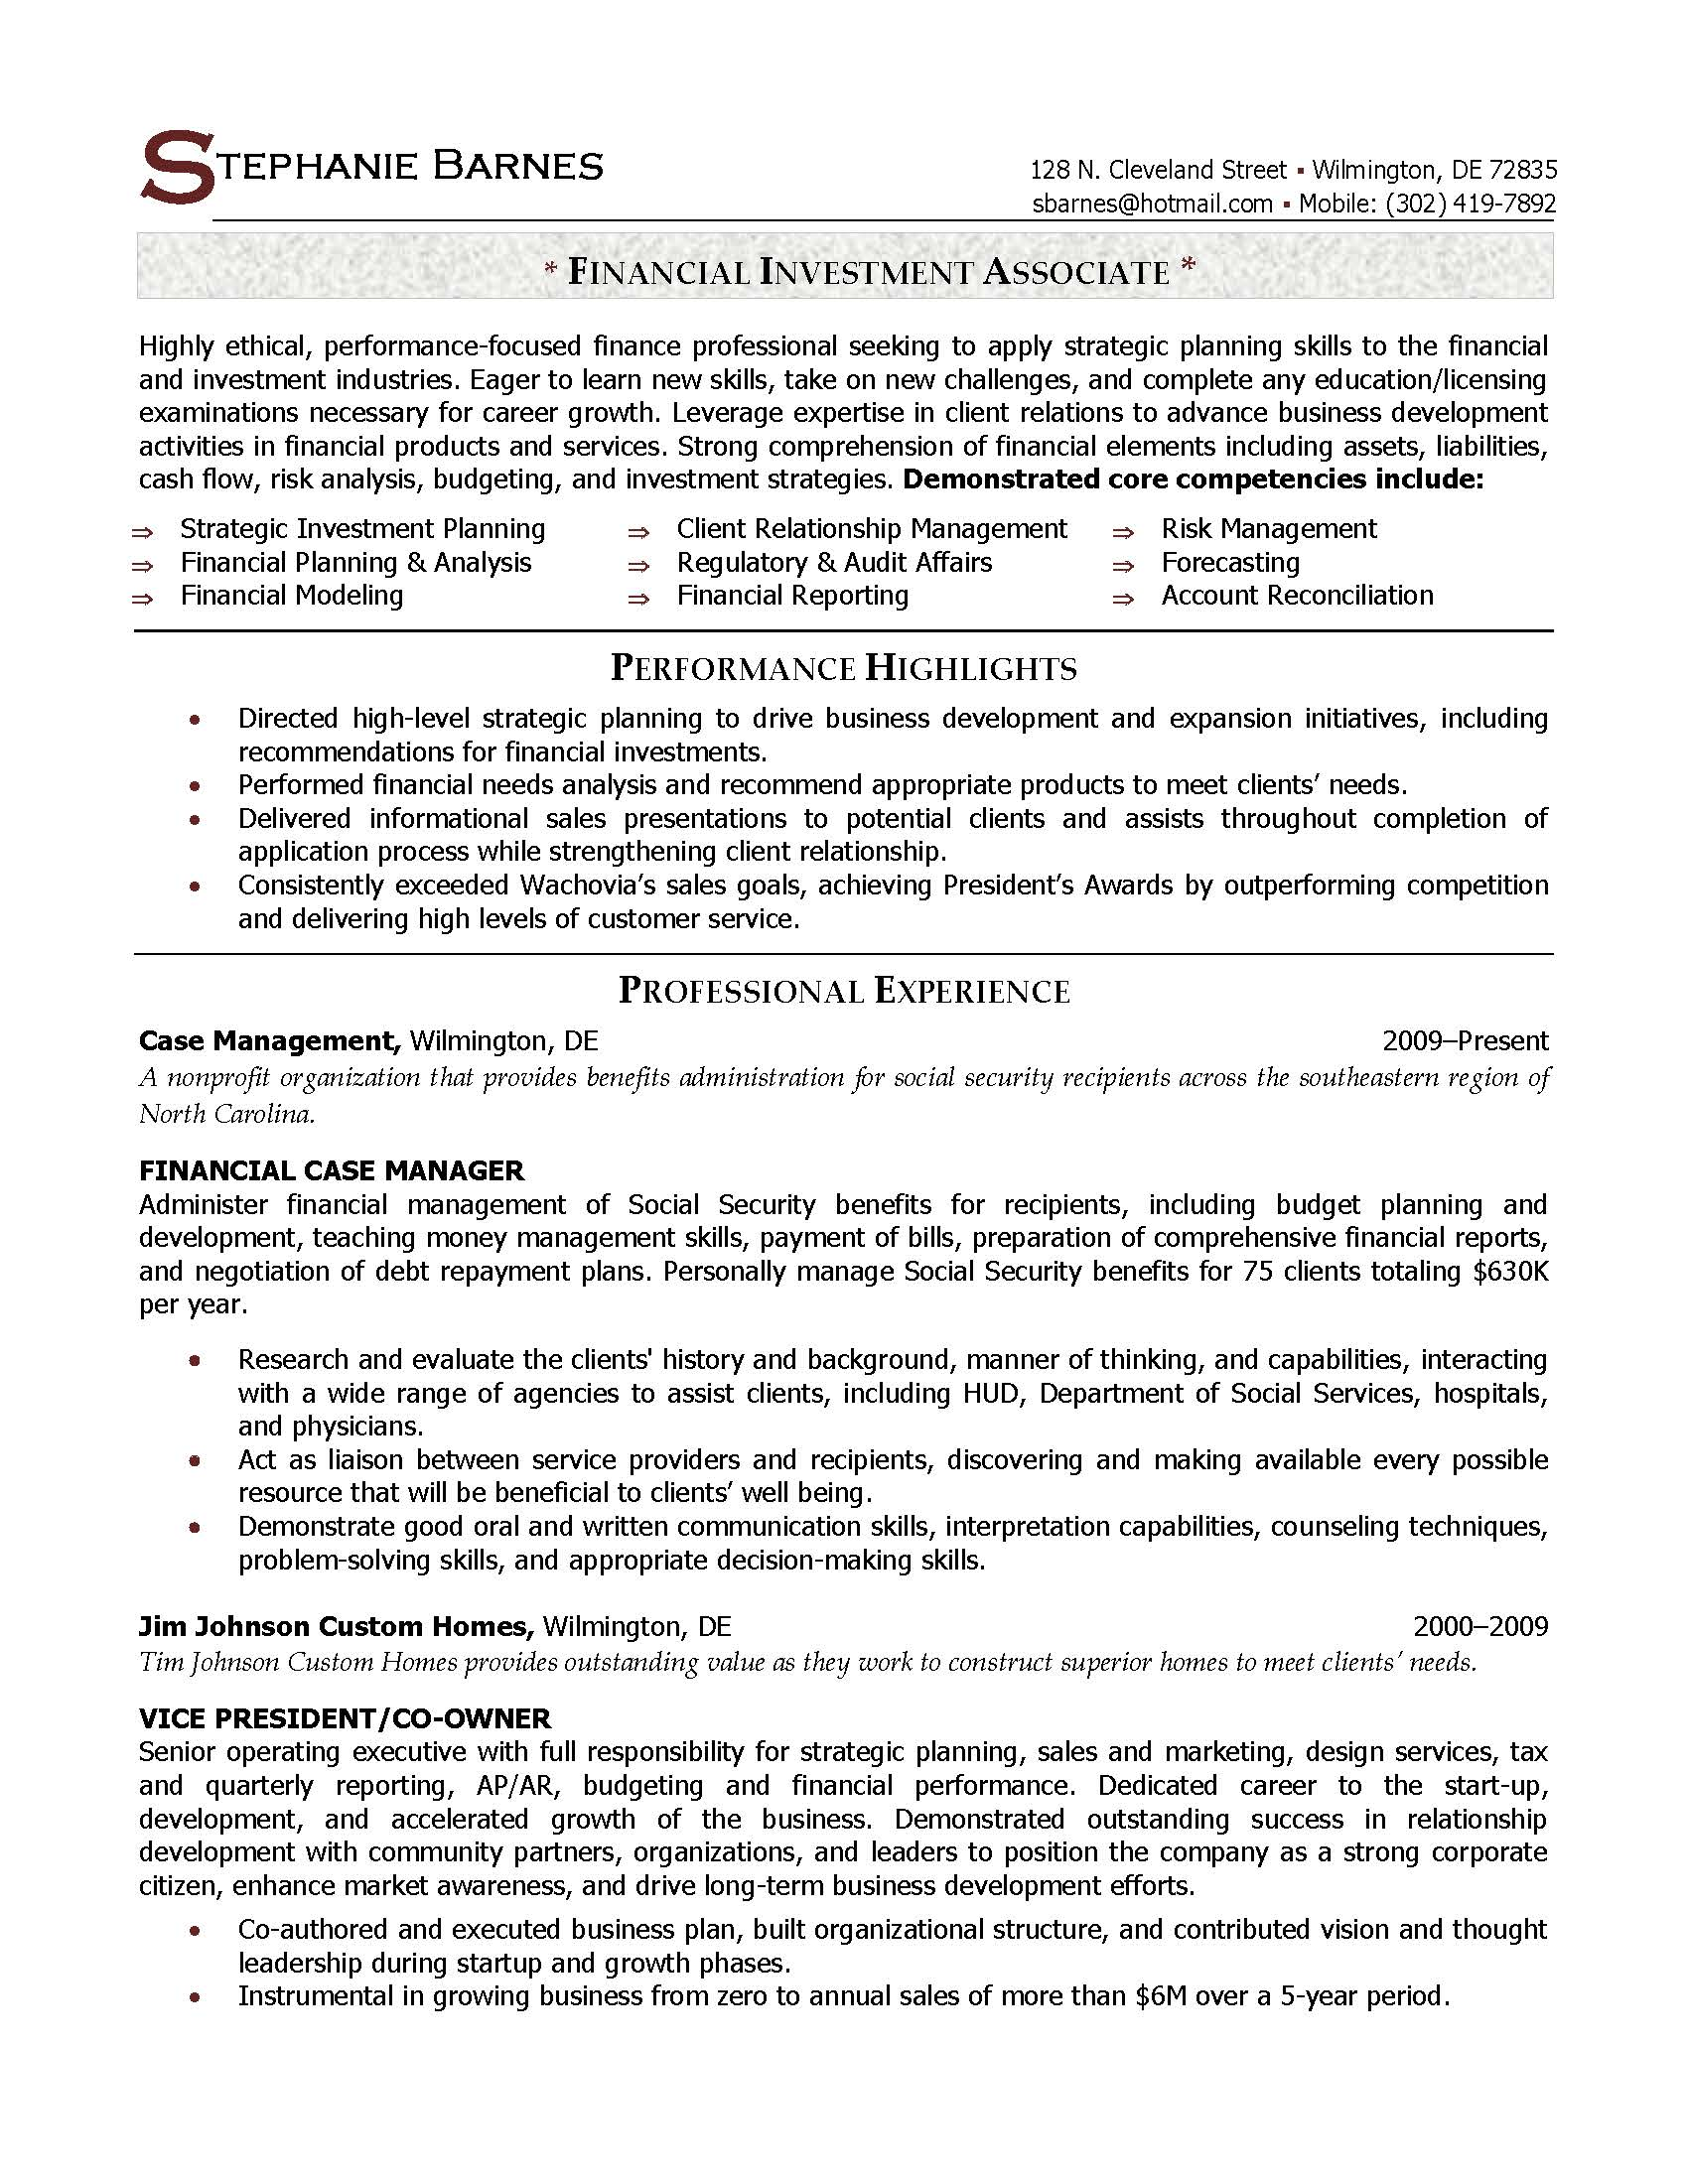 ... Investment Associate Resume Sample - Elite Resume Writing Services